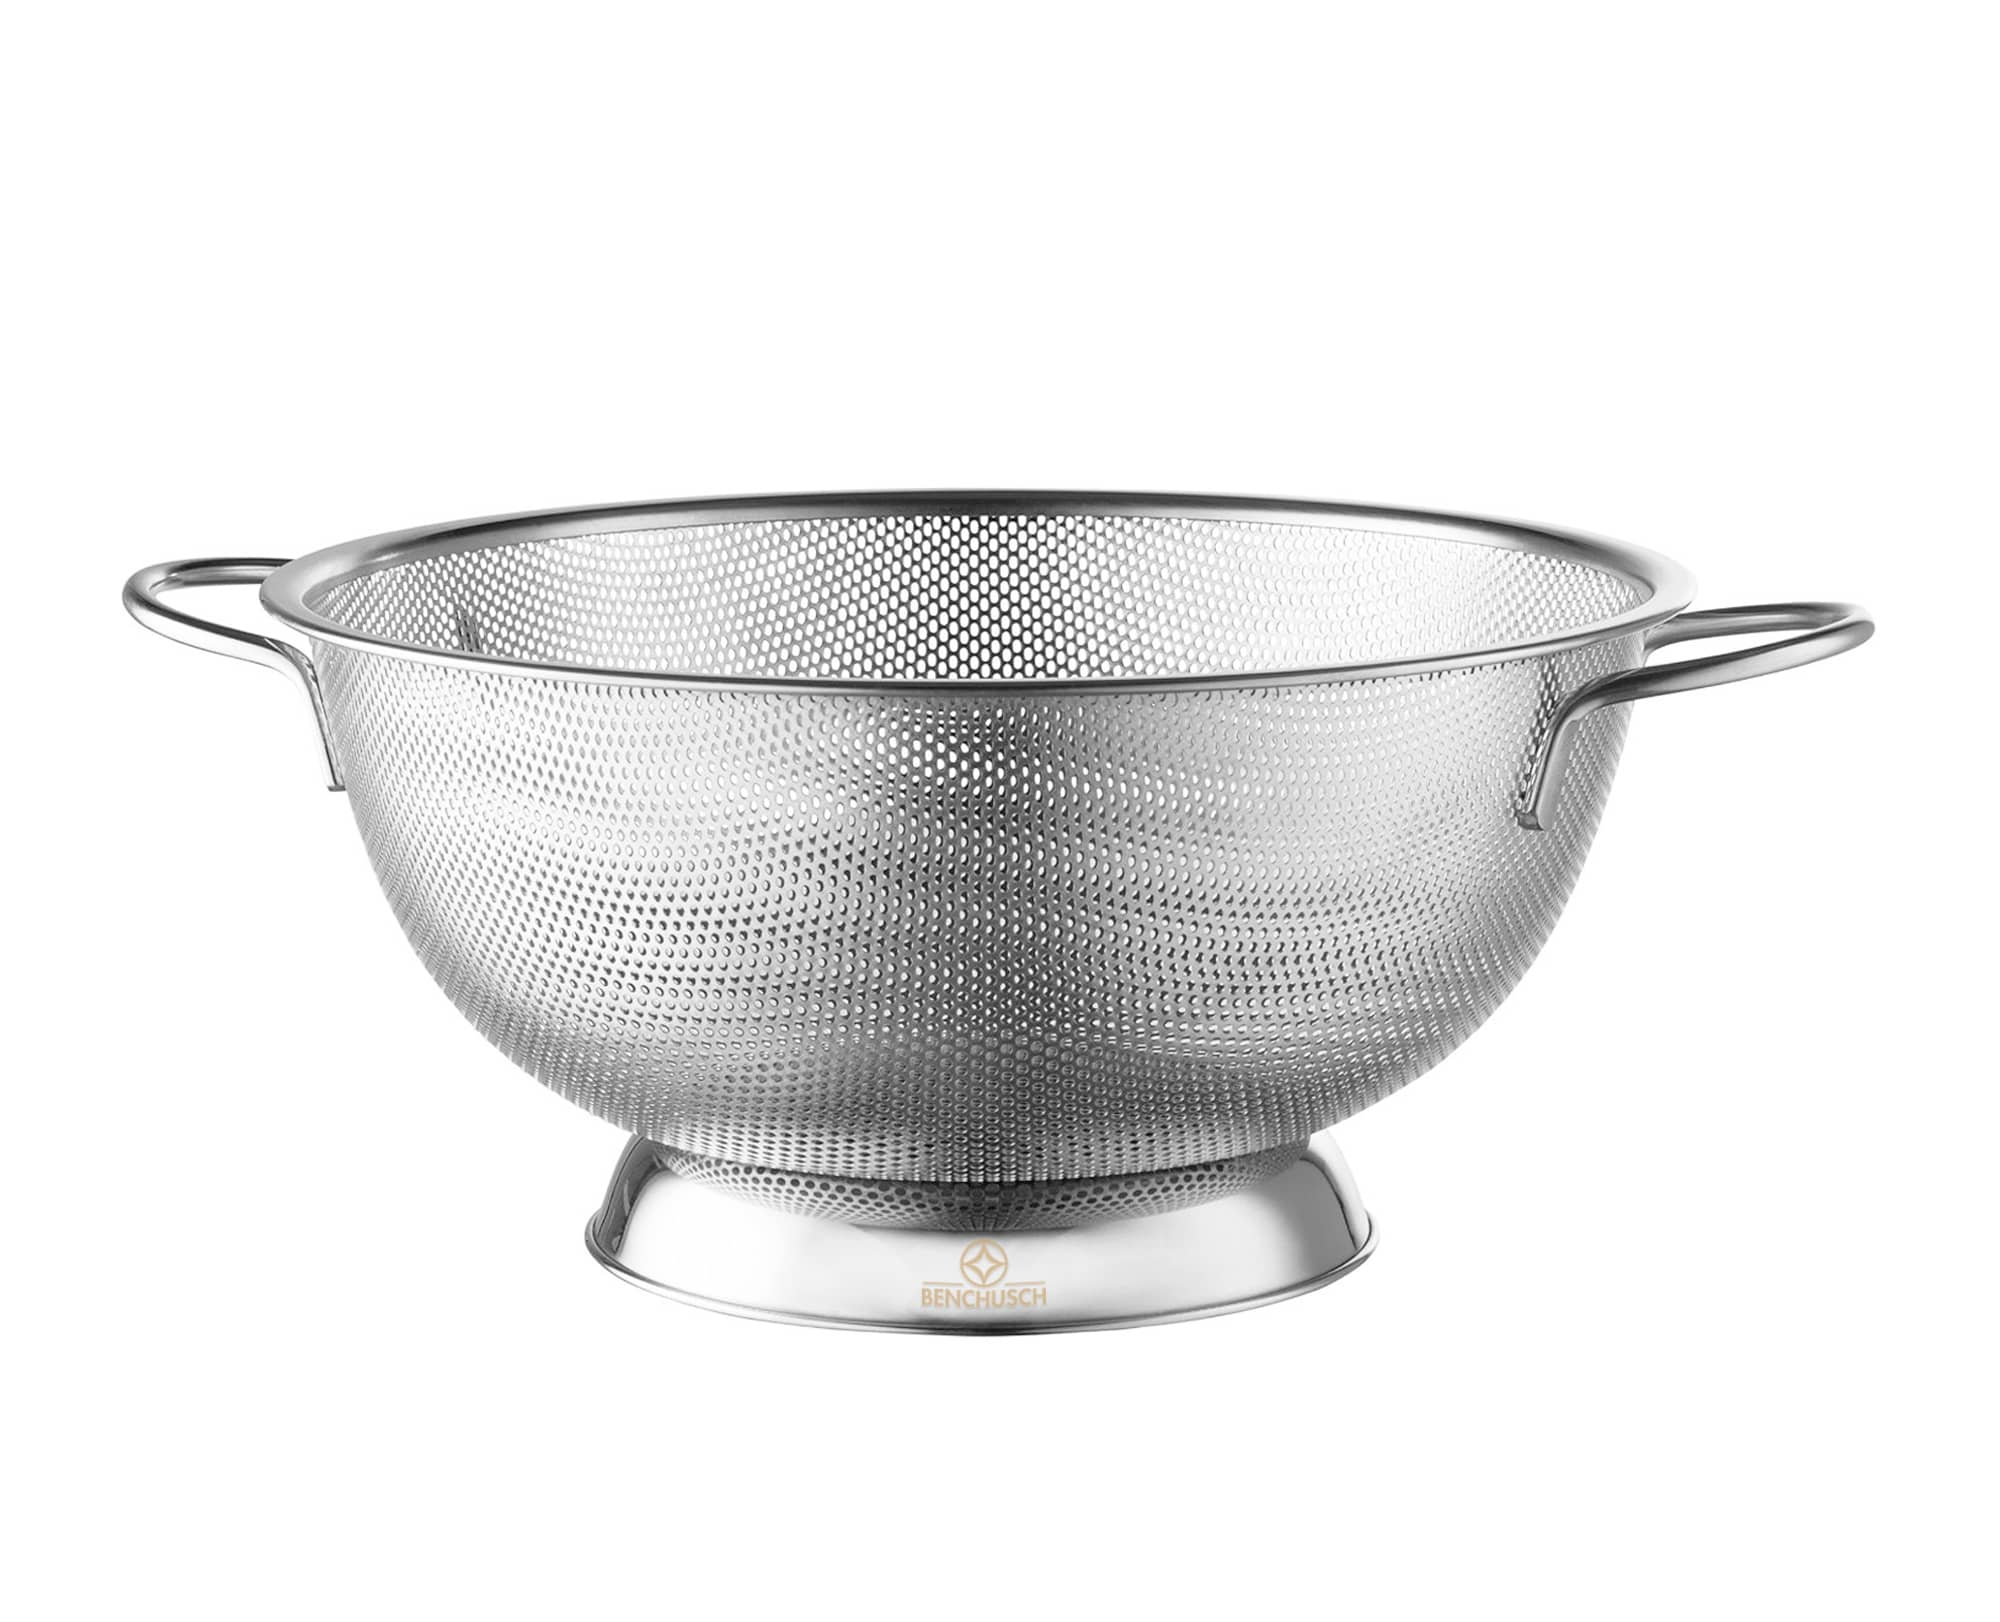 Benchusch Premium Stainless Steel Colander (5 Quart) with Riveted Handles, and precision 1.4mm drainage holes